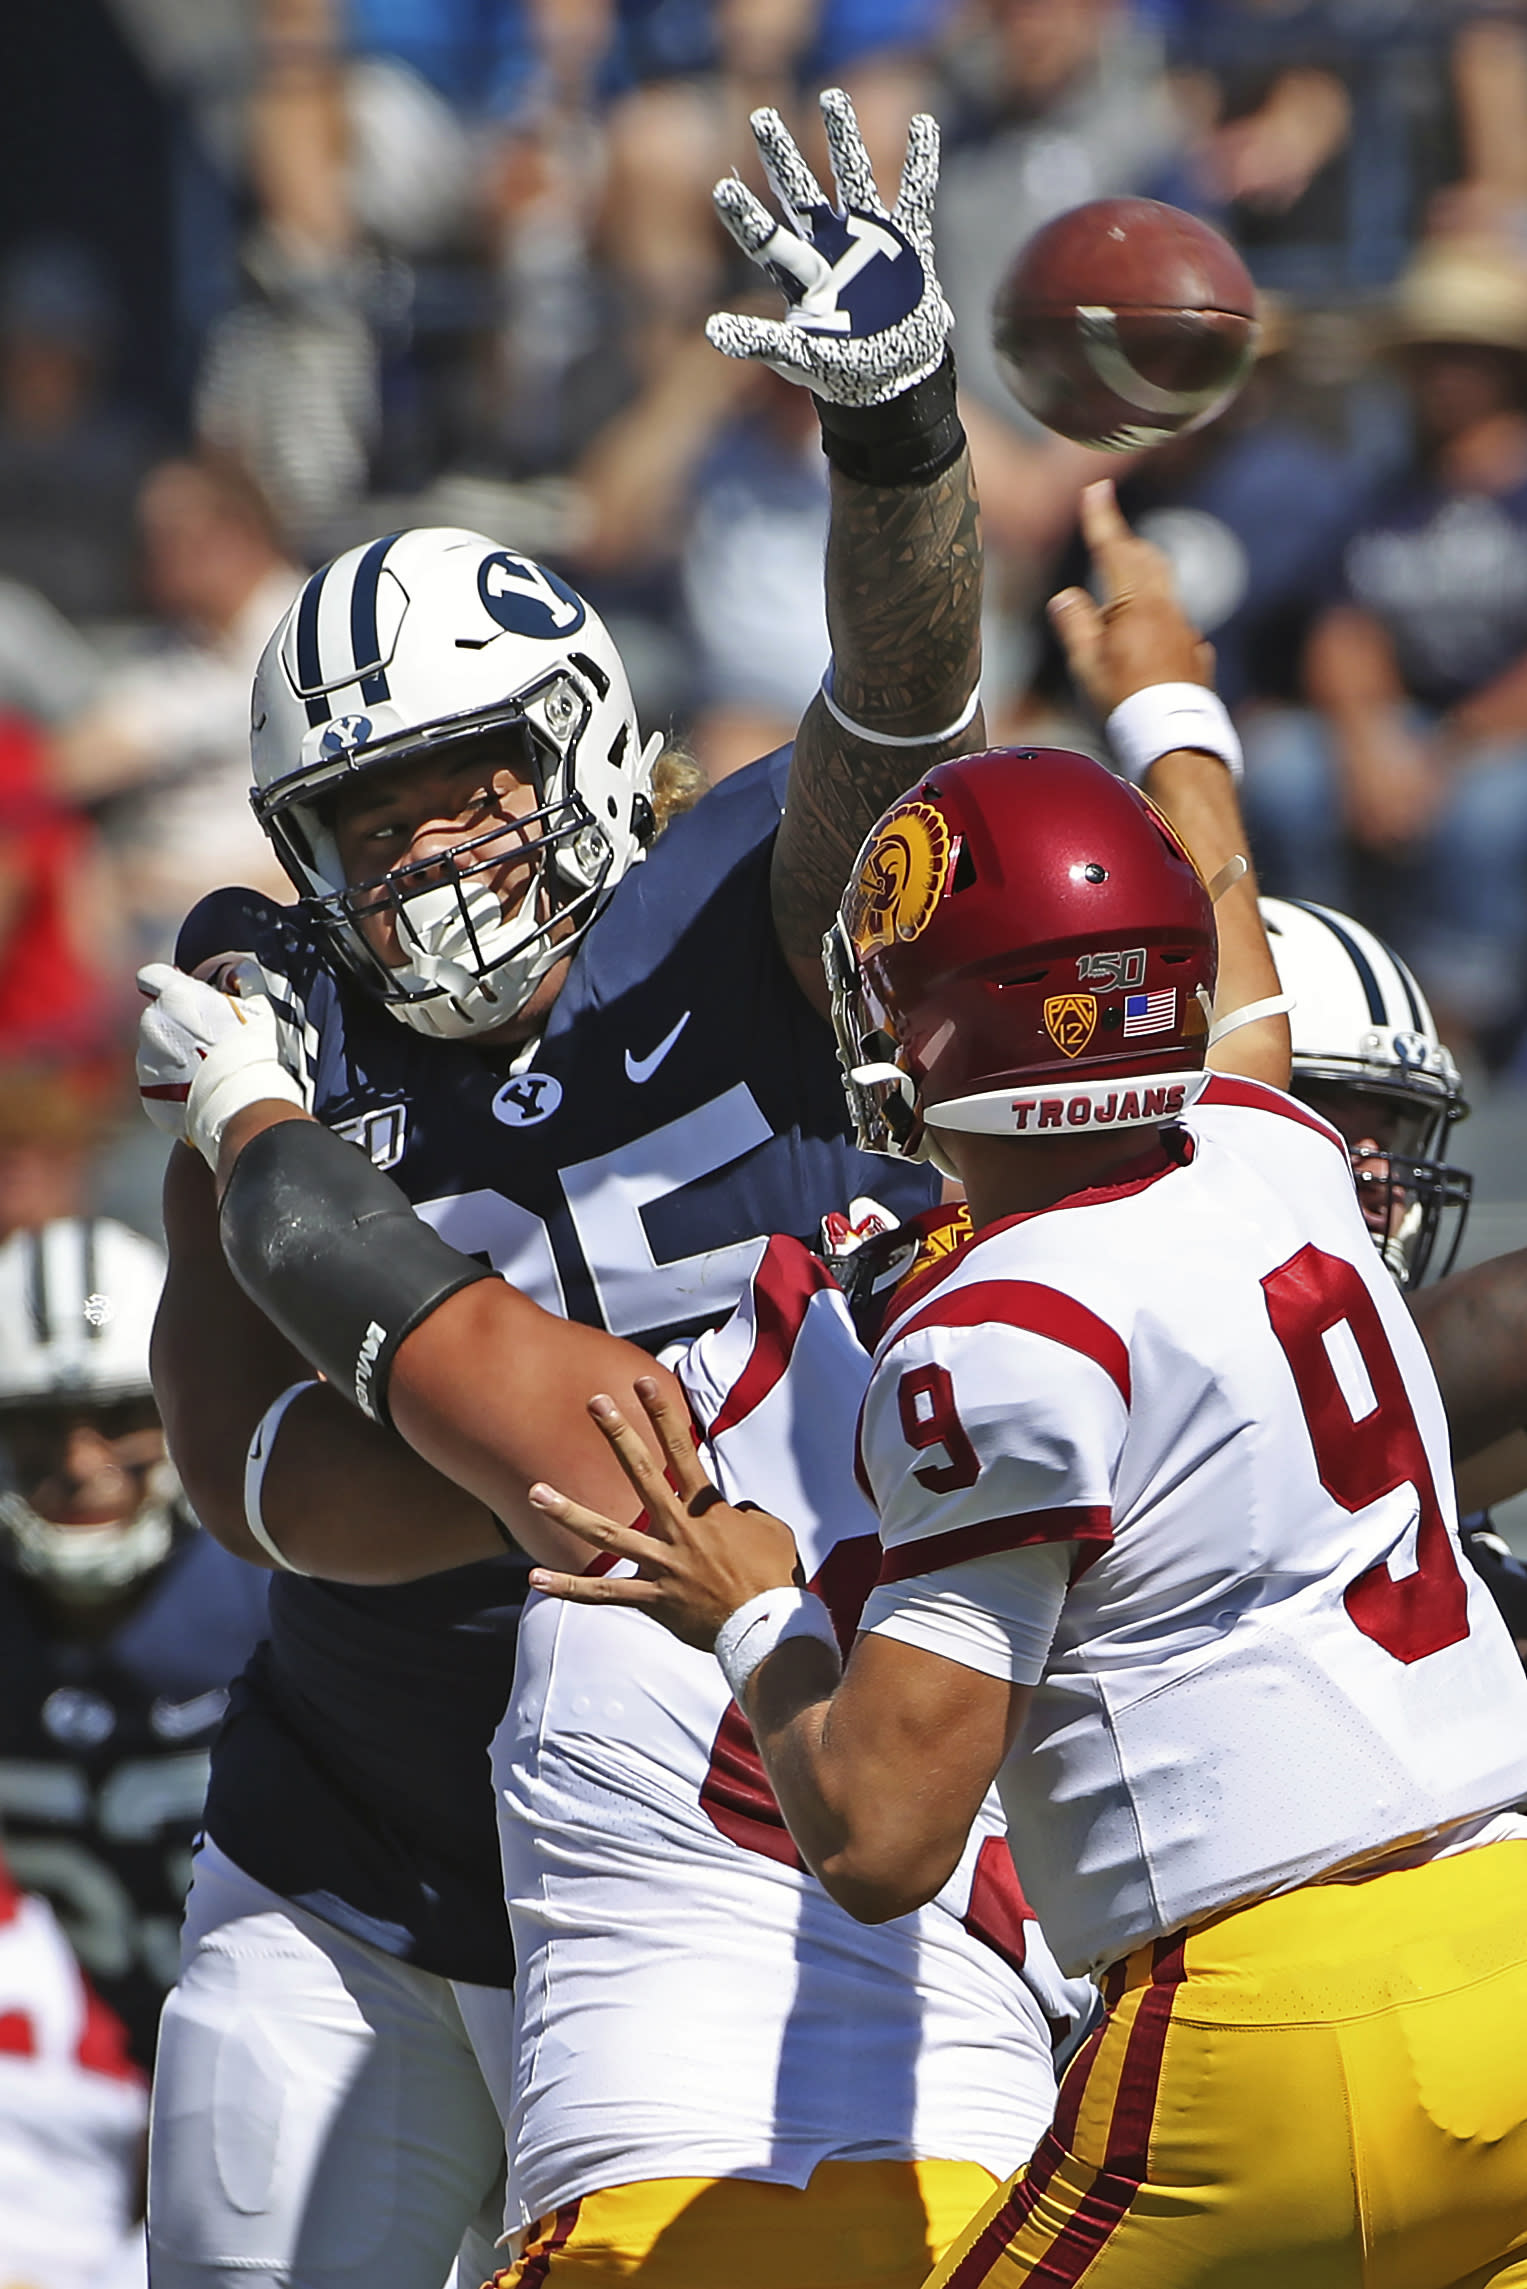 Big man's game: USC needs more from O-line vs. No. 10 Utah